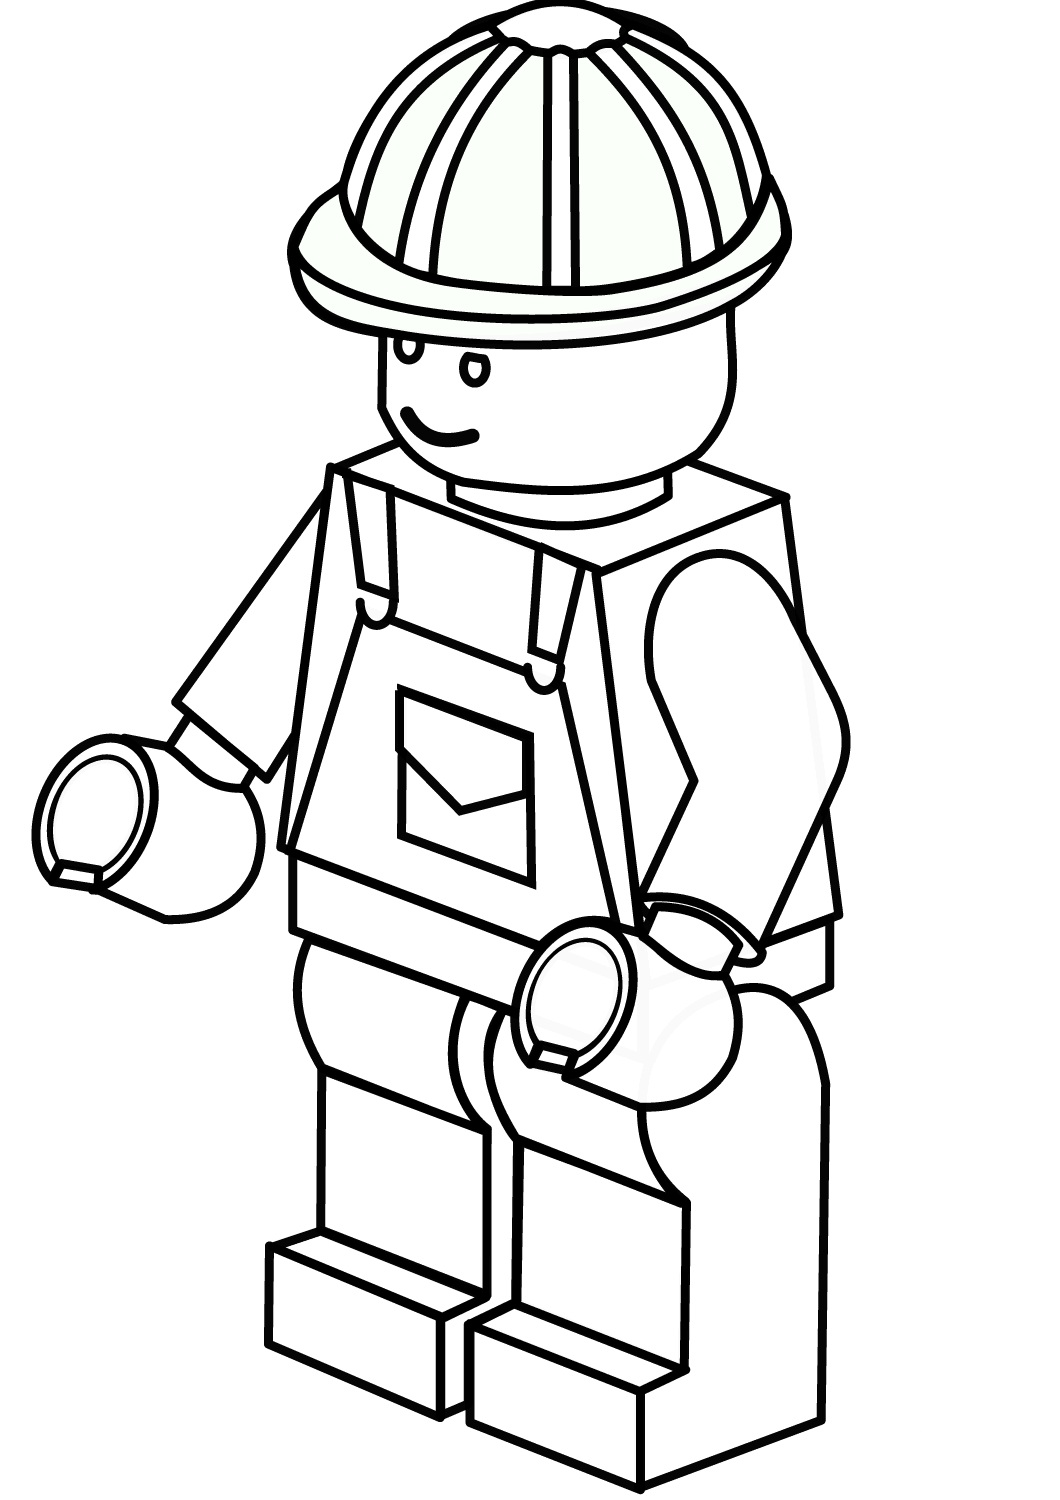 Lego Construction Worker Coloring Page